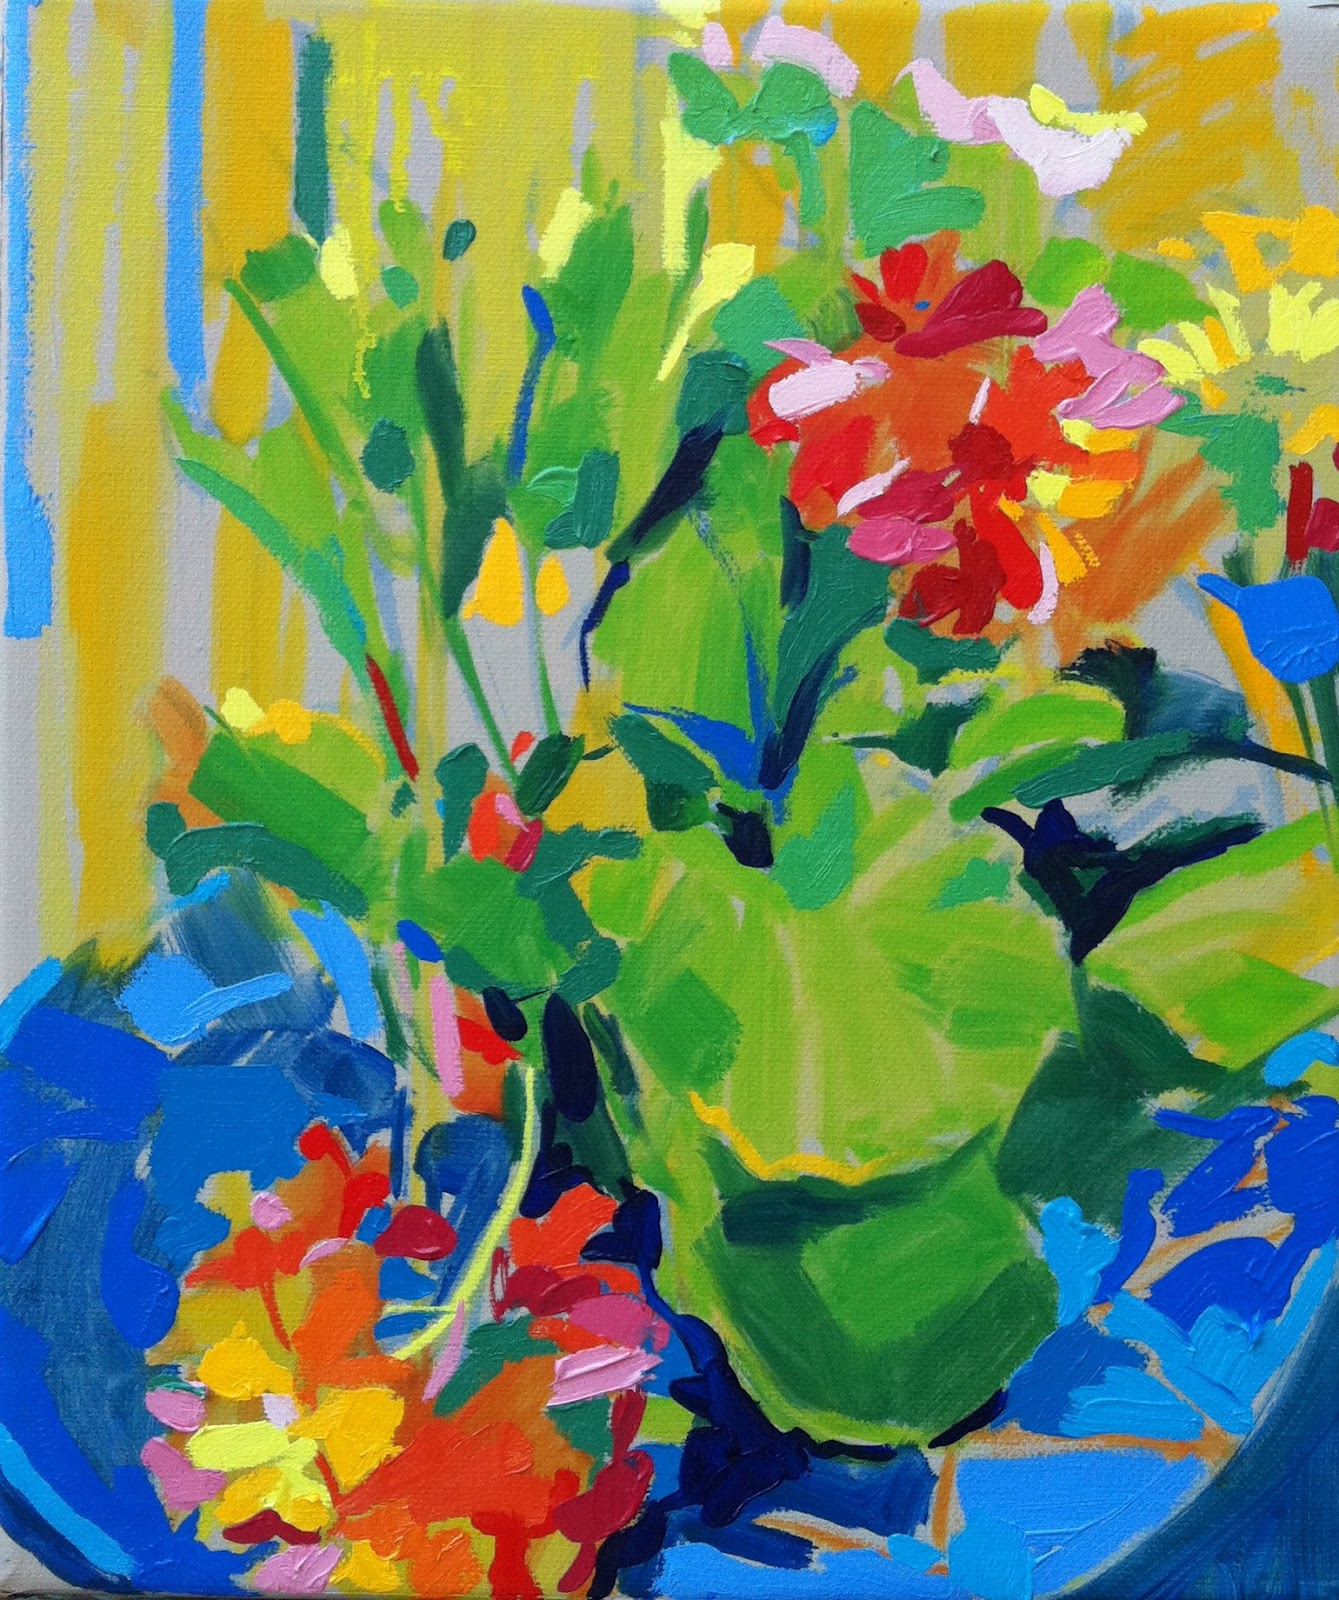 Haidee-Jo Summers artist : Bold and bright!